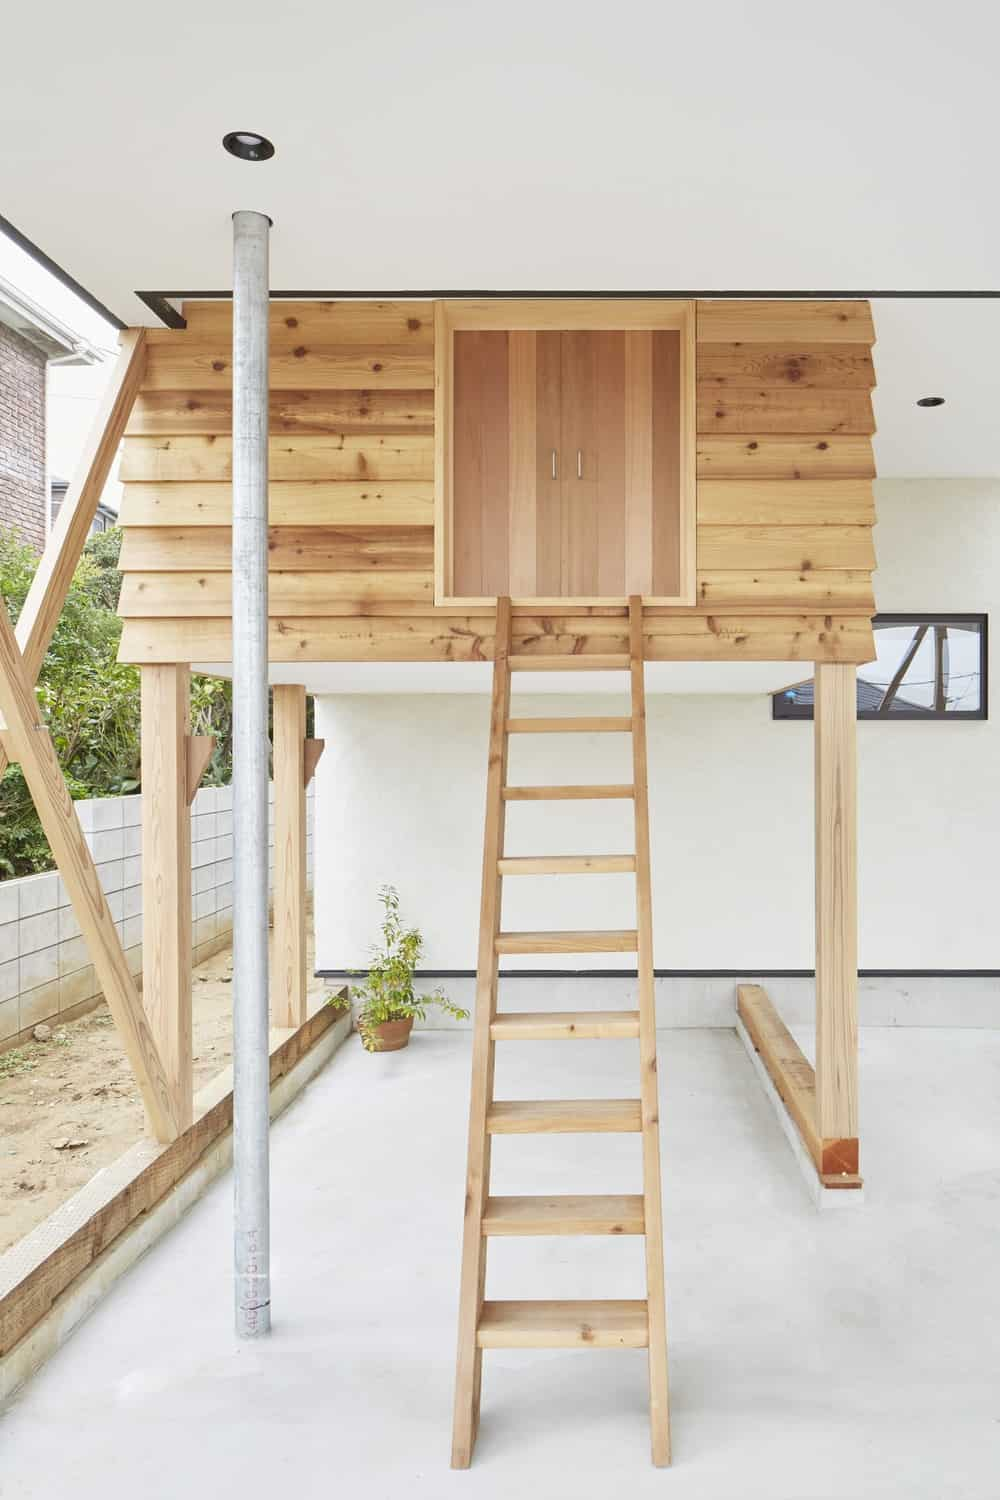 Wooden ladder in the Triple Stilt House designed by Archidance.